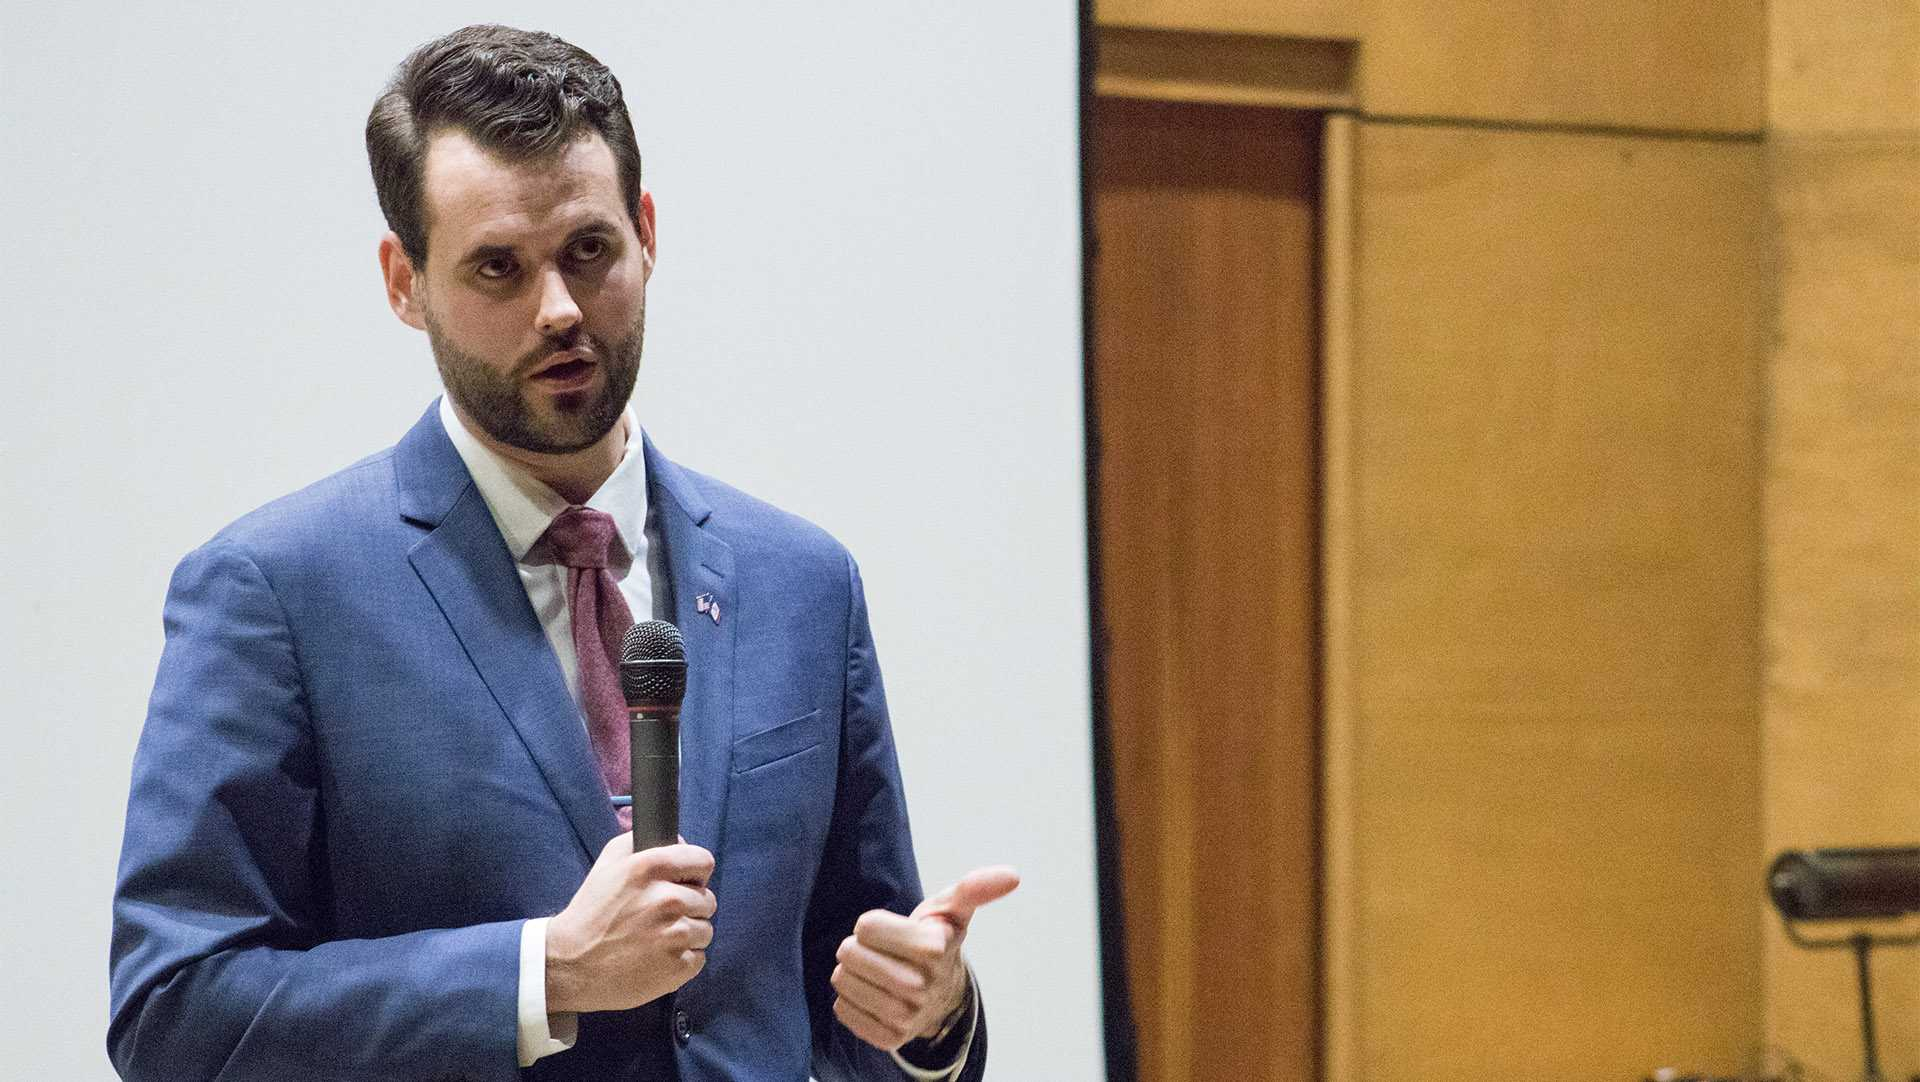 Zach Wahls talks LGBTQ+ activism, campaign during visit to UI